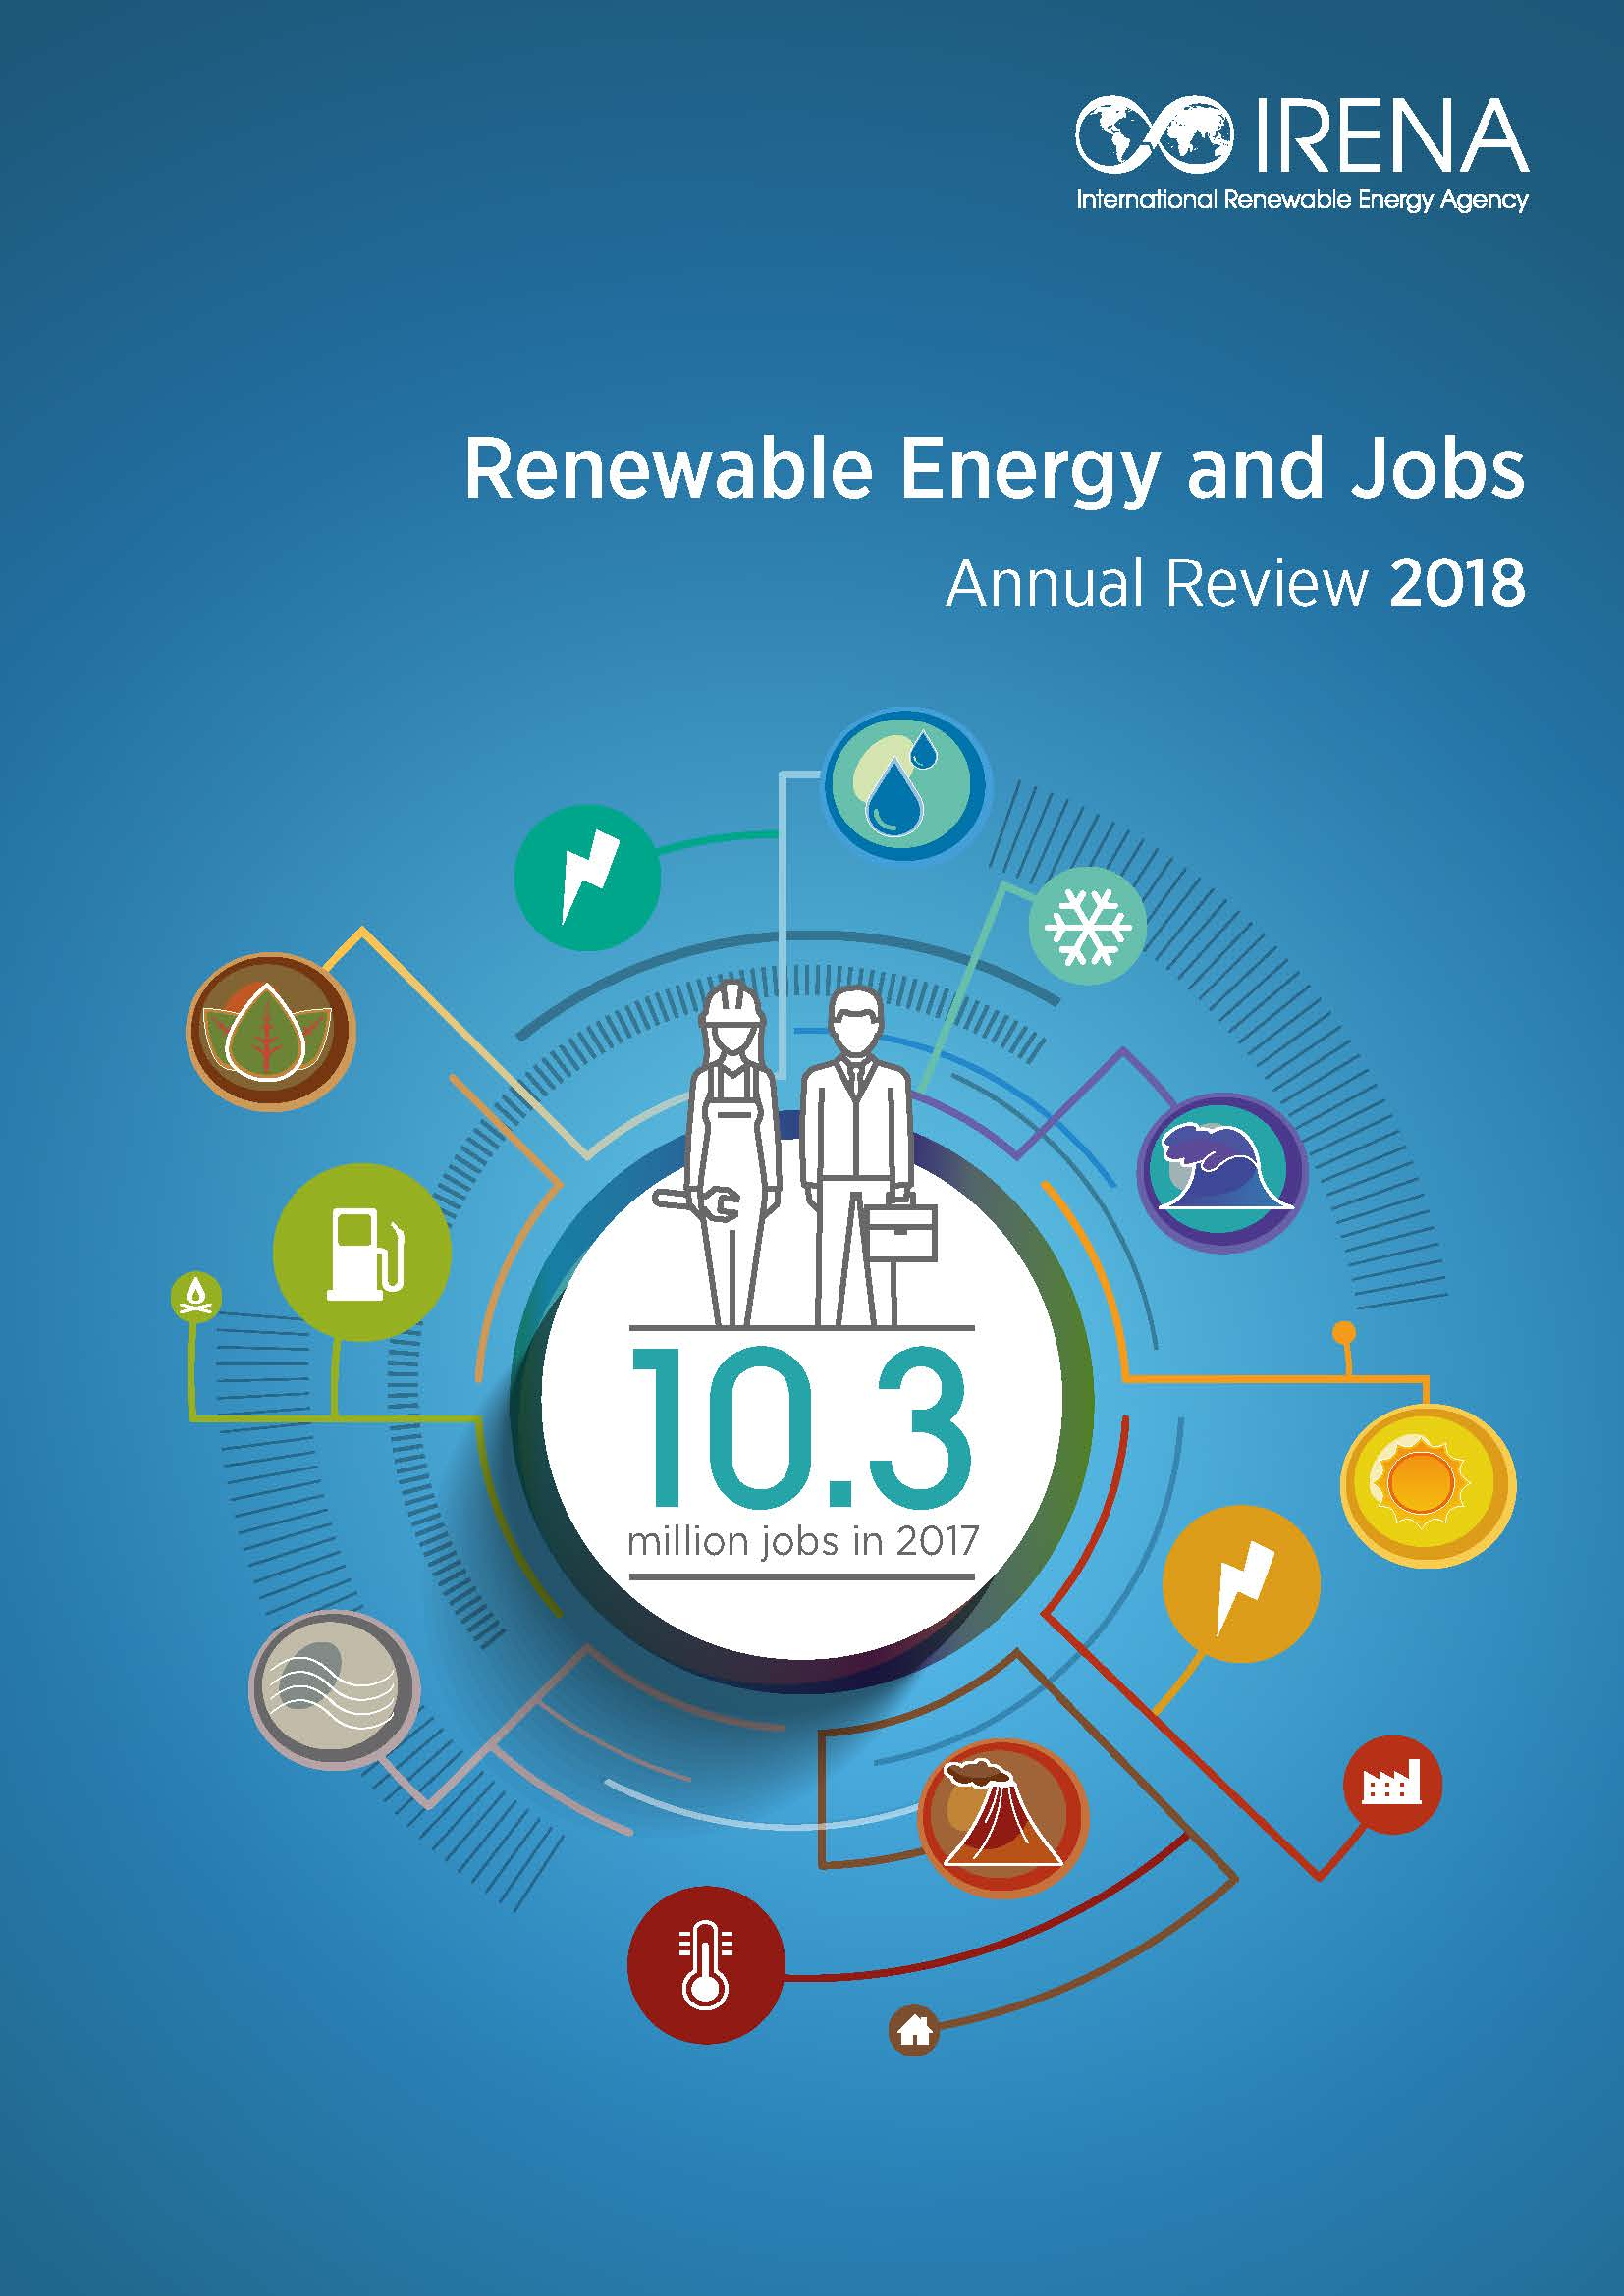 IRENA_RE_Jobs_Annual_Review_2018 1.jpg